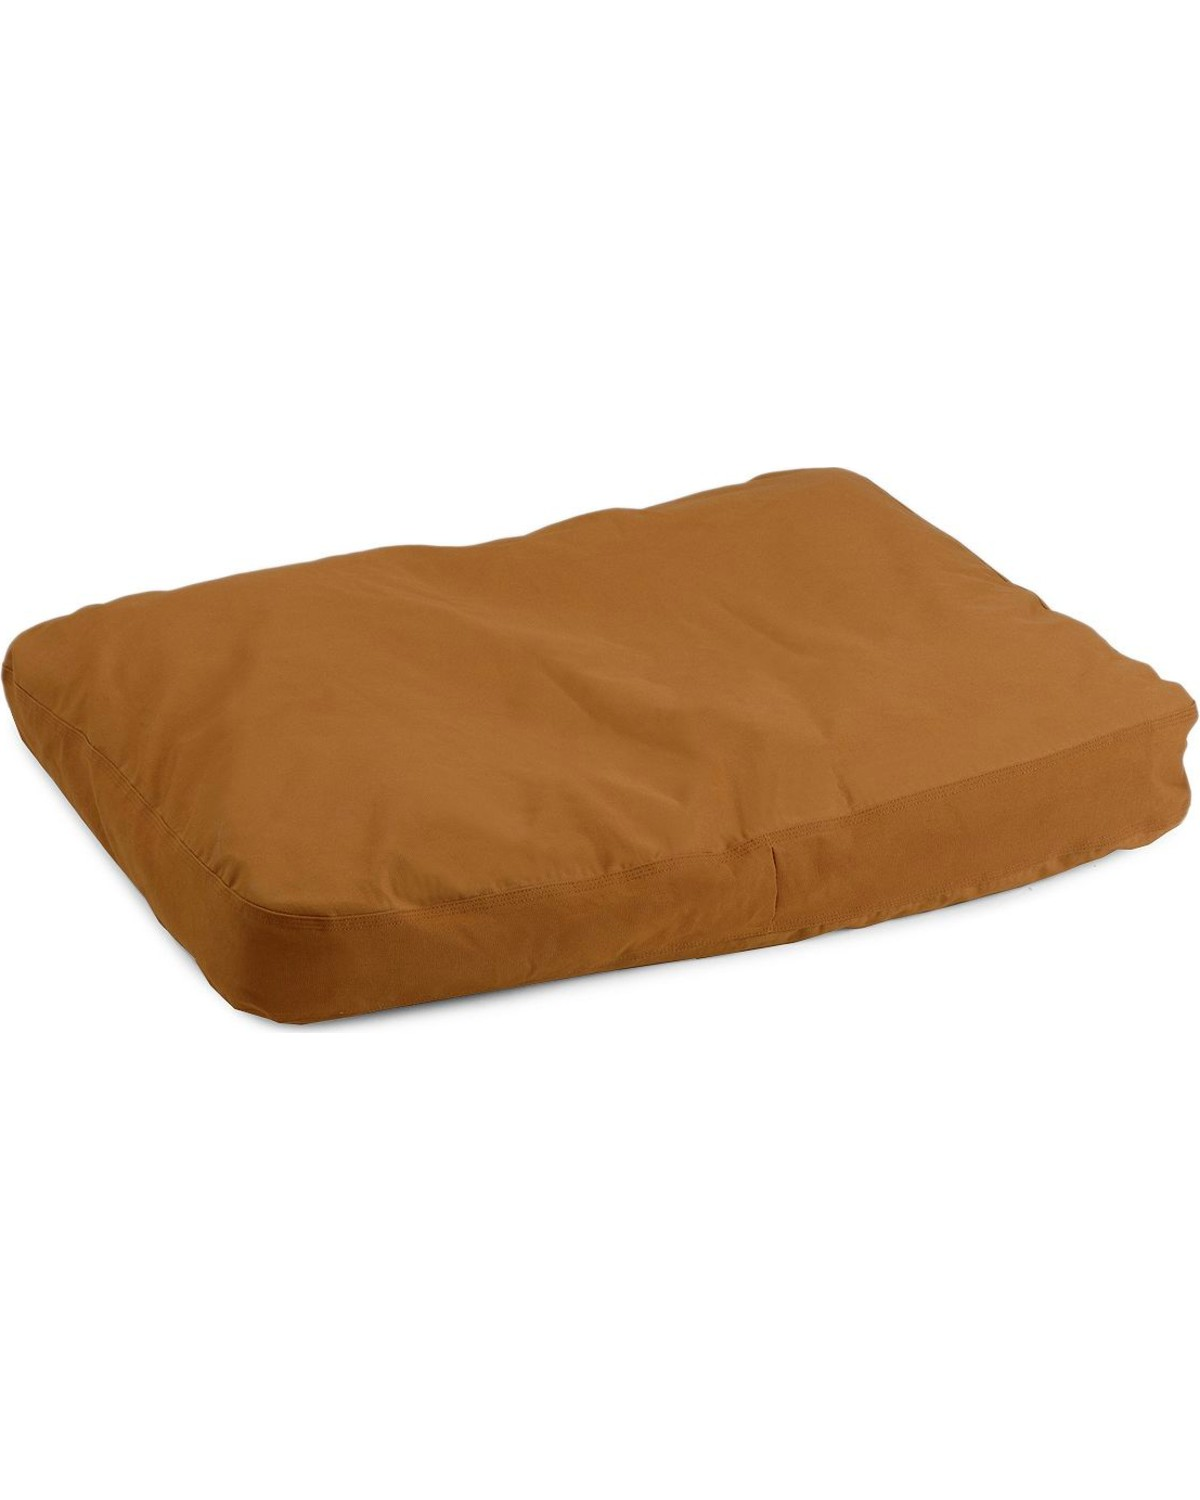 carhartt canvas brown duck dog bed | sheplers